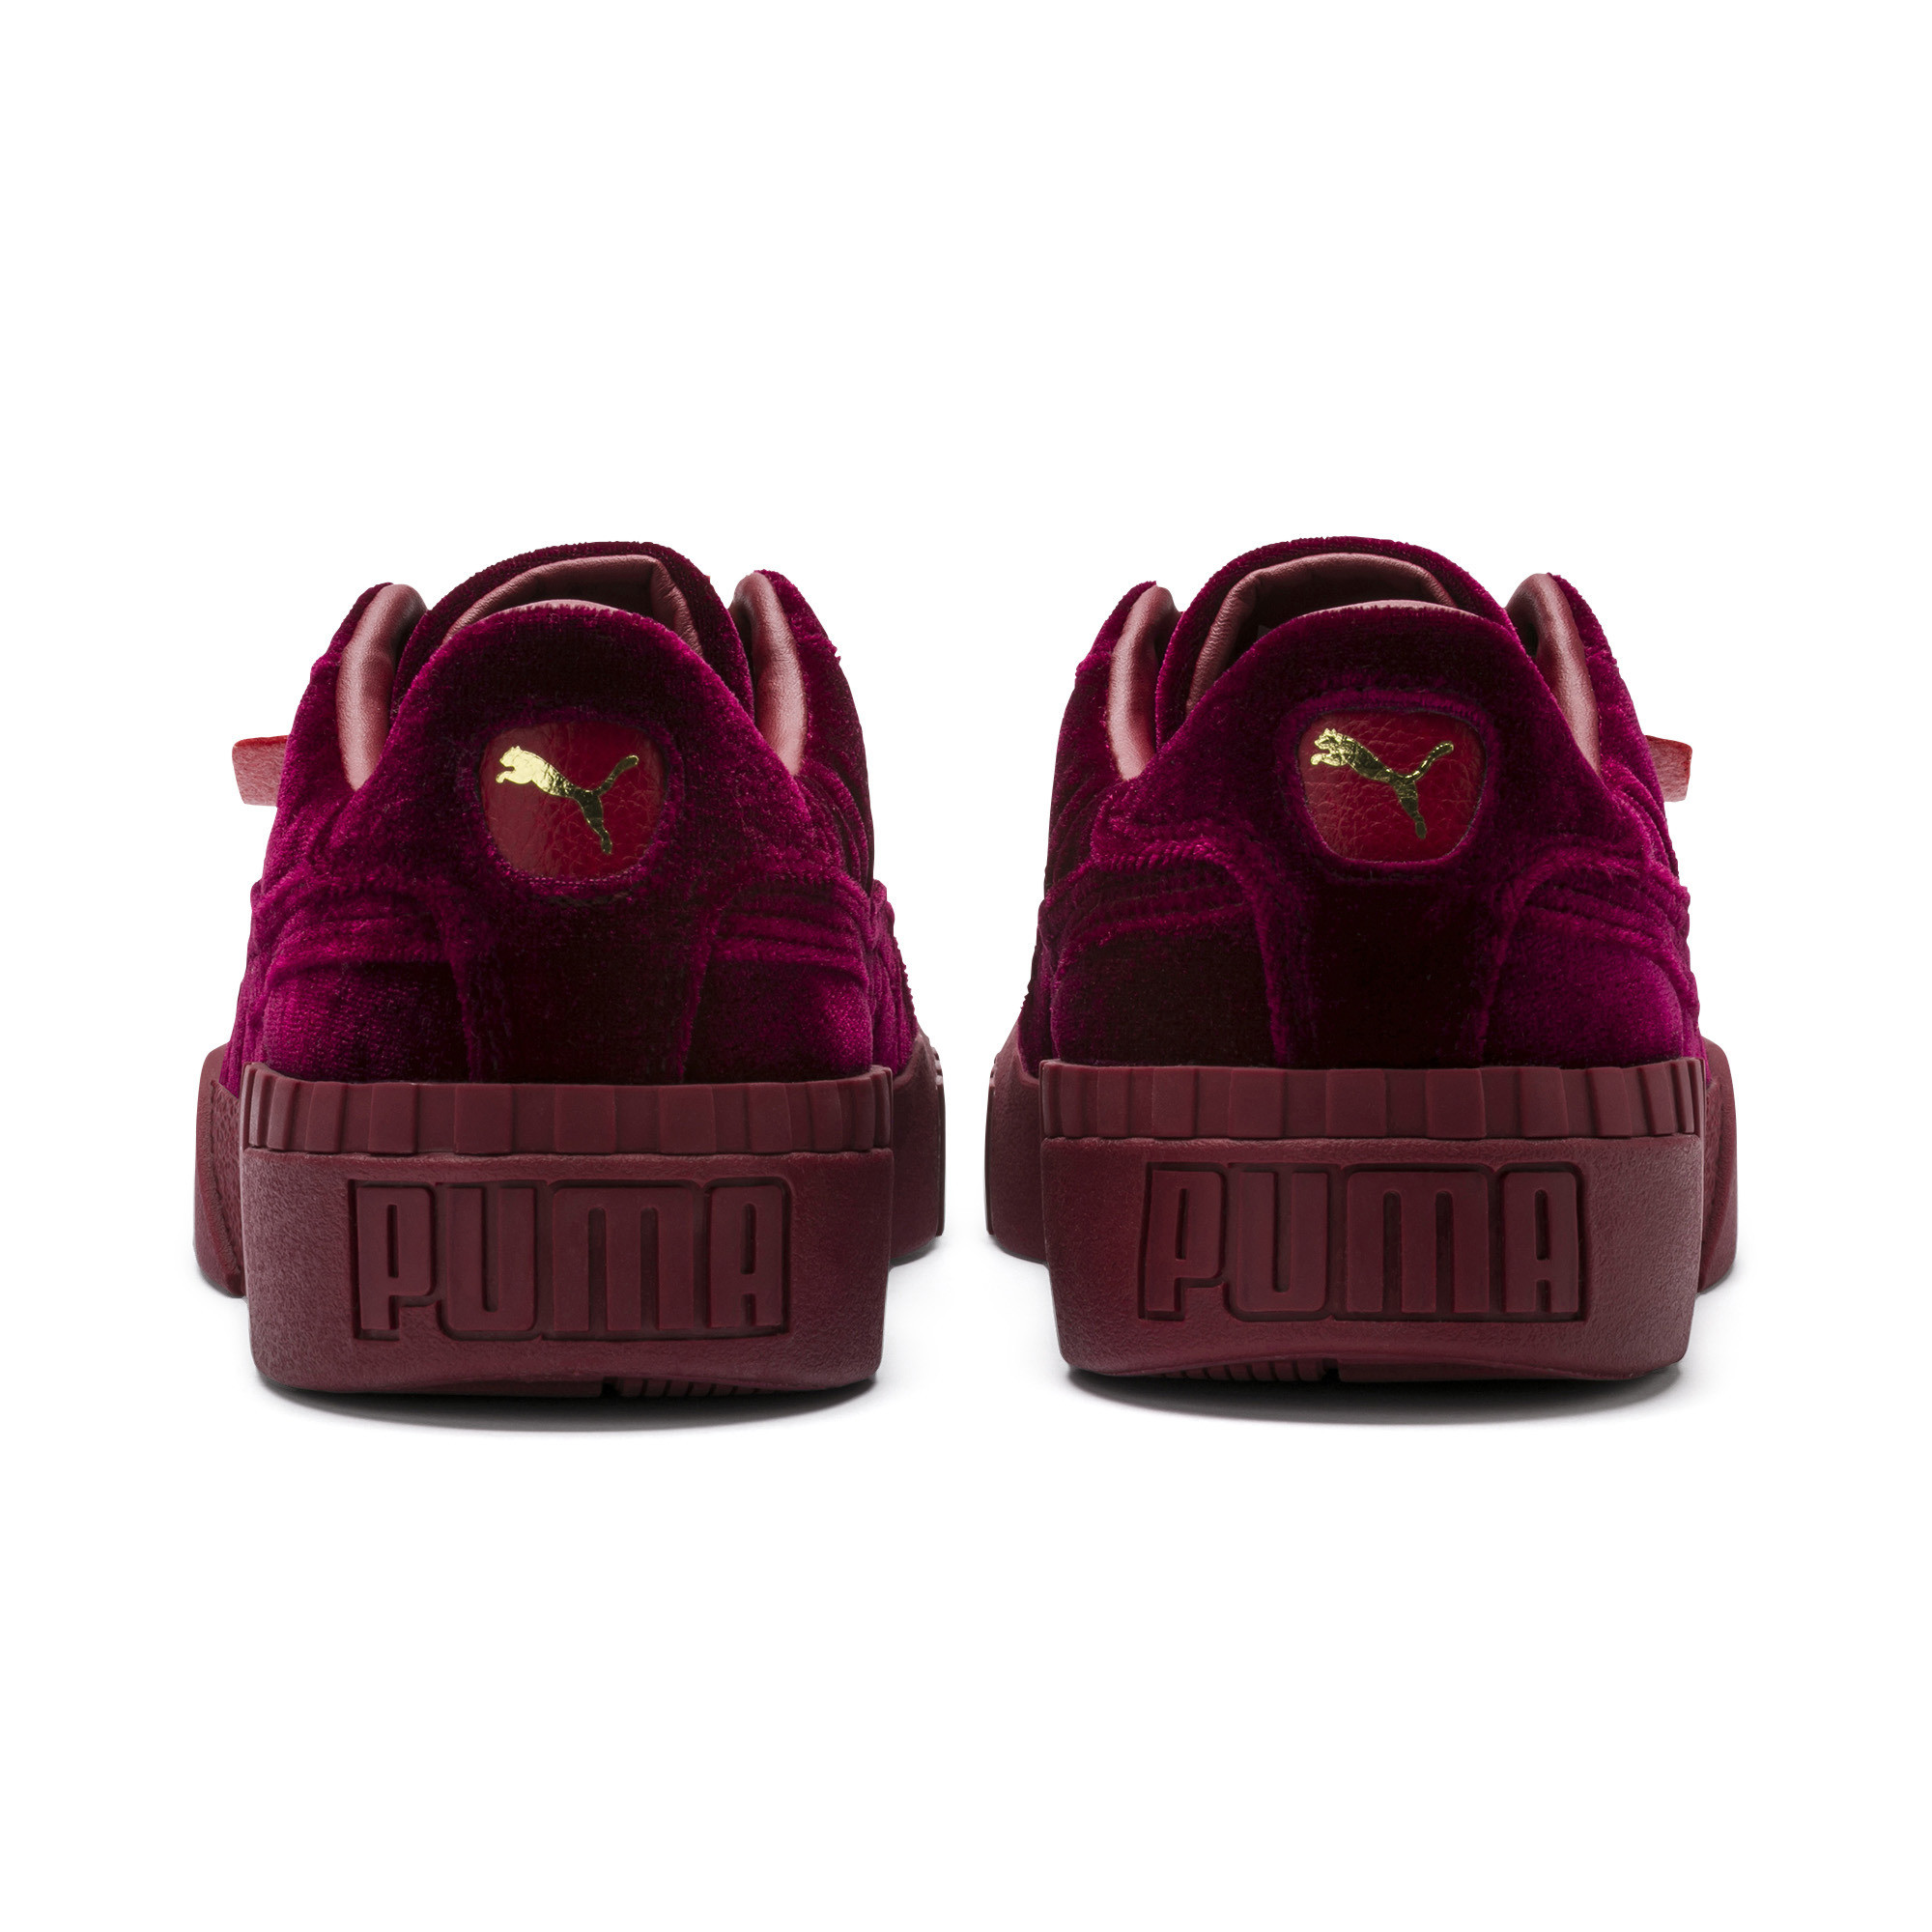 PUMA-Cali-Velvet-Women-039-s-Sneakers-Women-Shoe-Evolution thumbnail 9